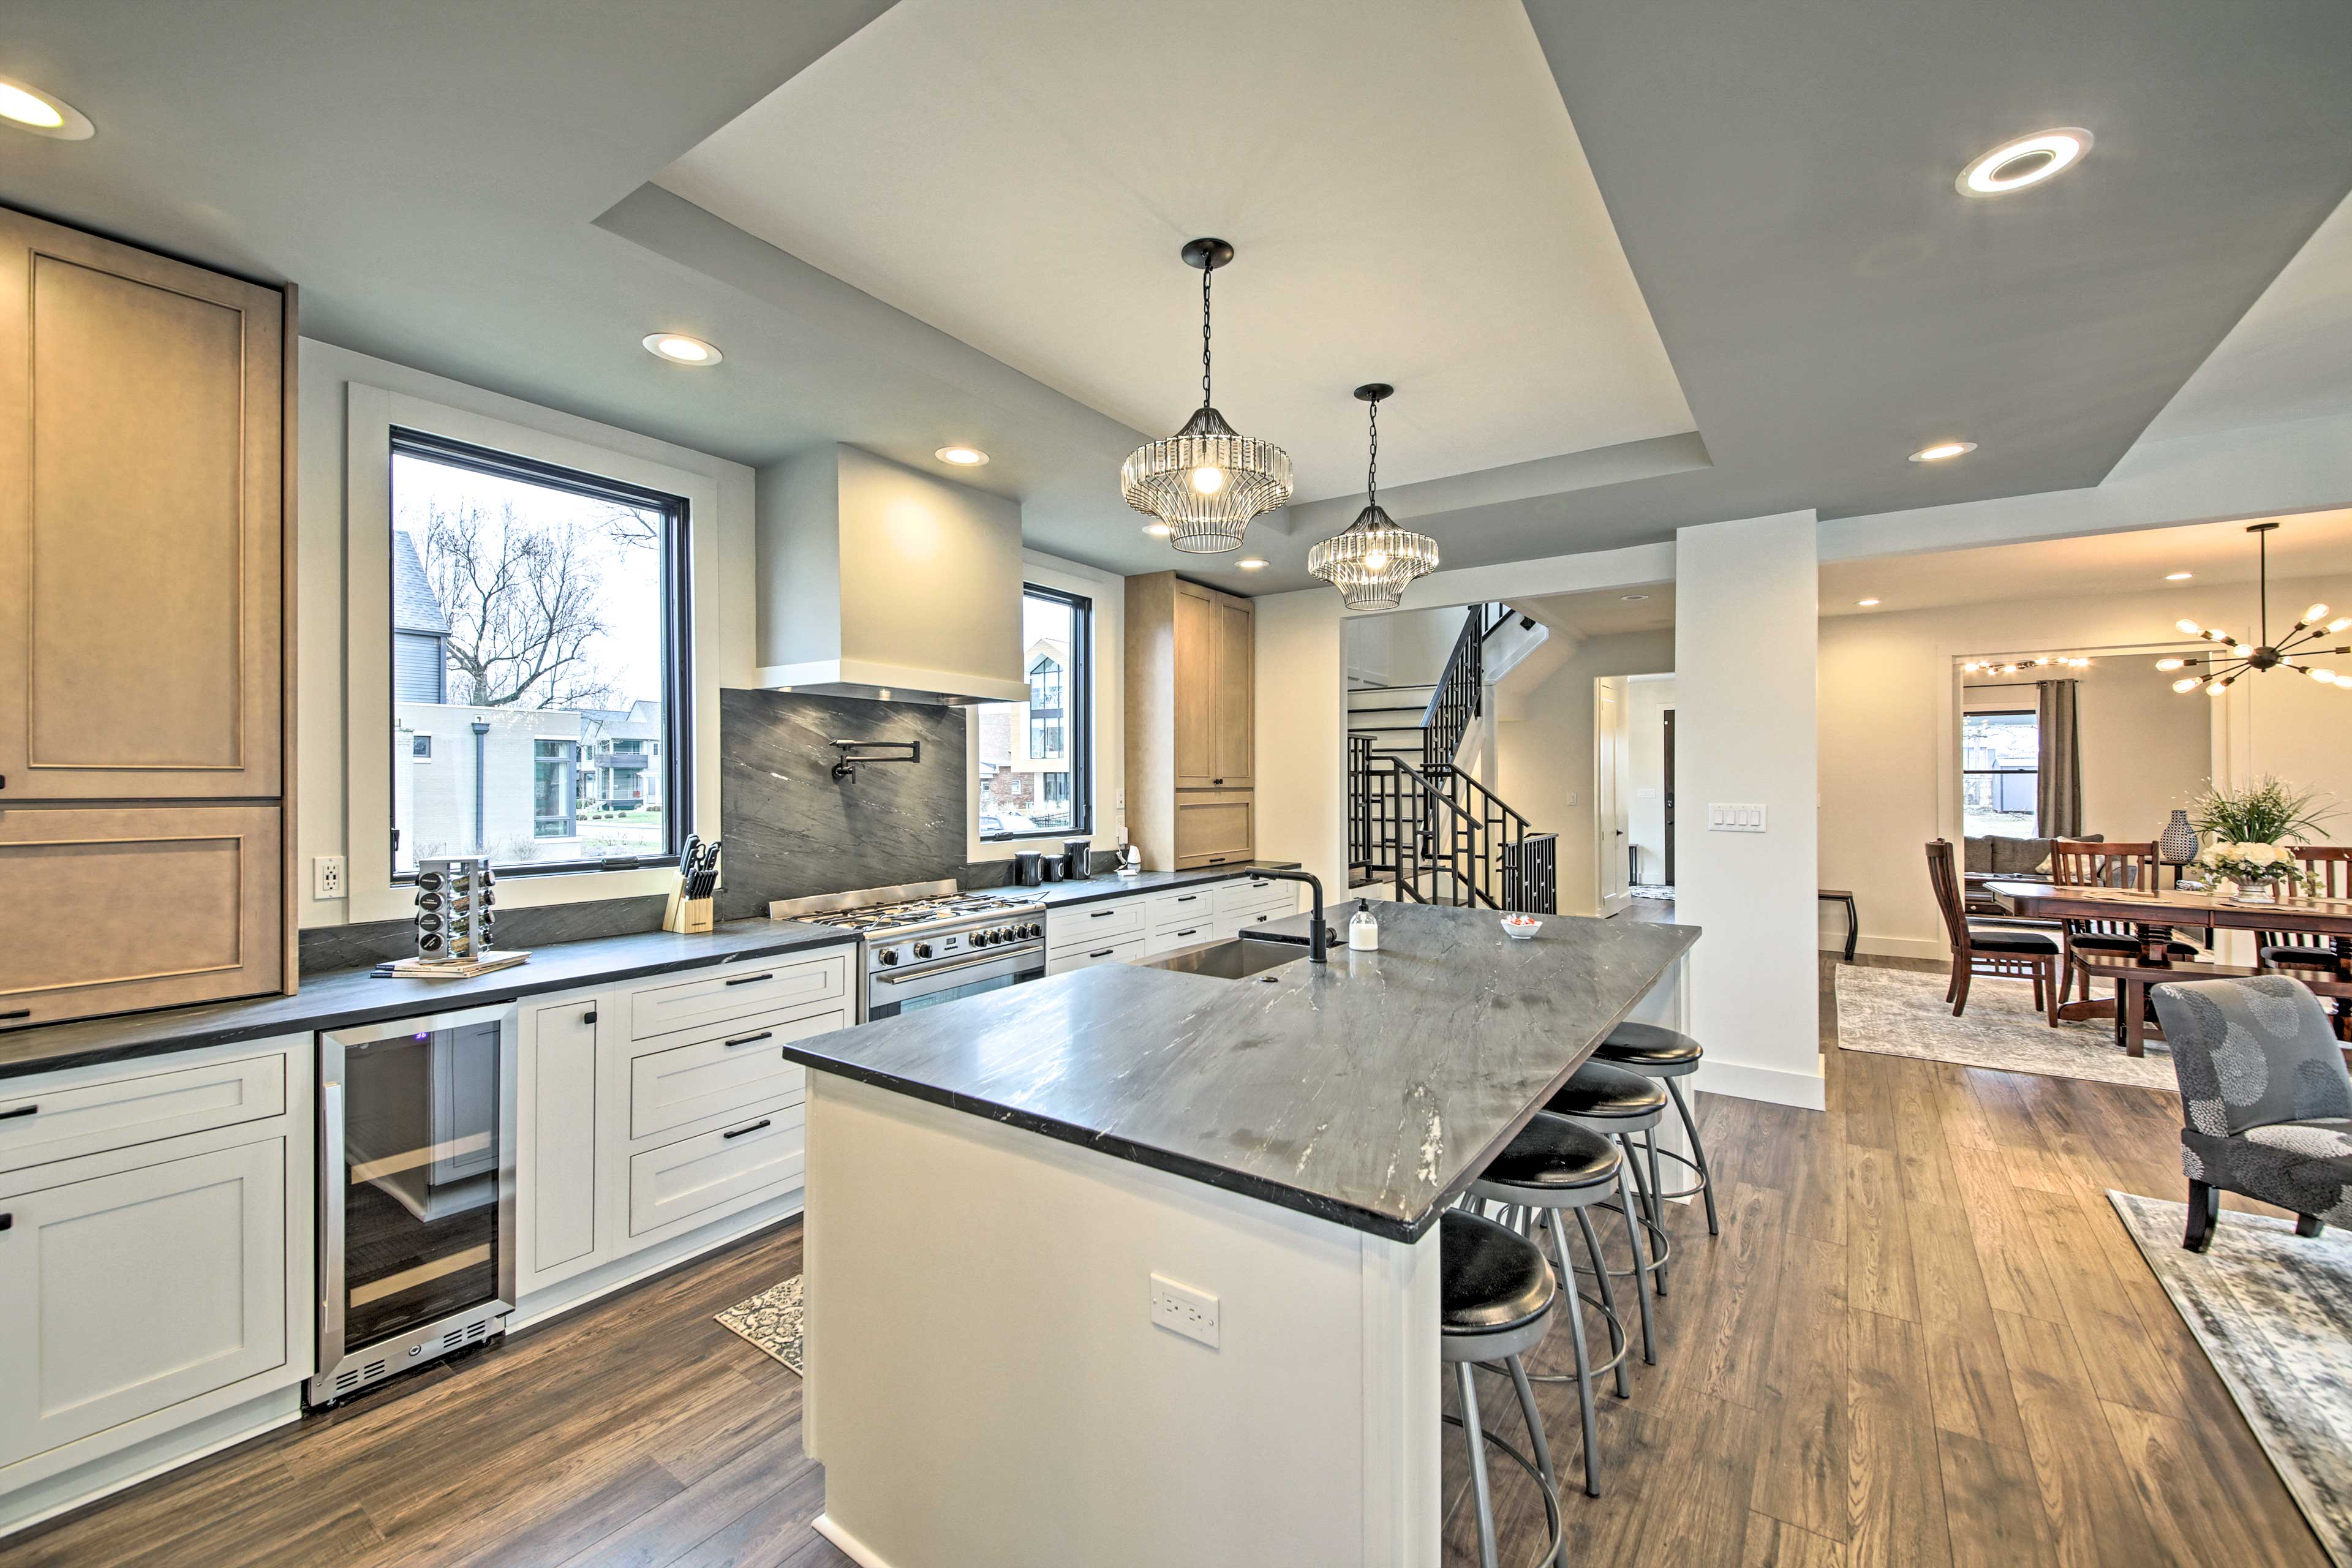 Pull out a bar stool and get ready to eat breakfast at the kitchen island.